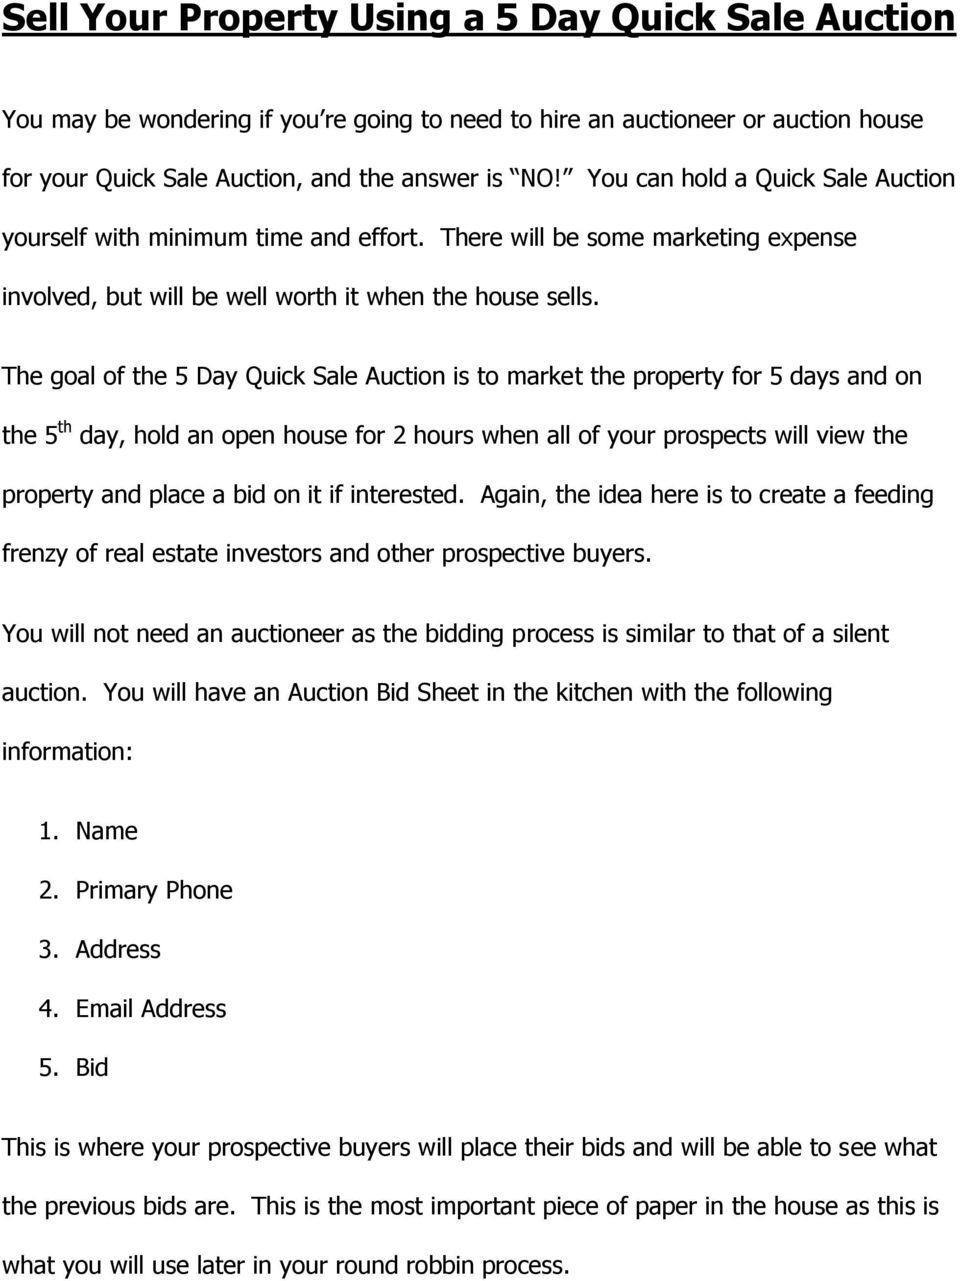 The goal of the 5 Day Quick Sale Auction is to market the property for 5 days and on the 5 th day, hold an open house for 2 hours when all of your prospects will view the property and place a bid on